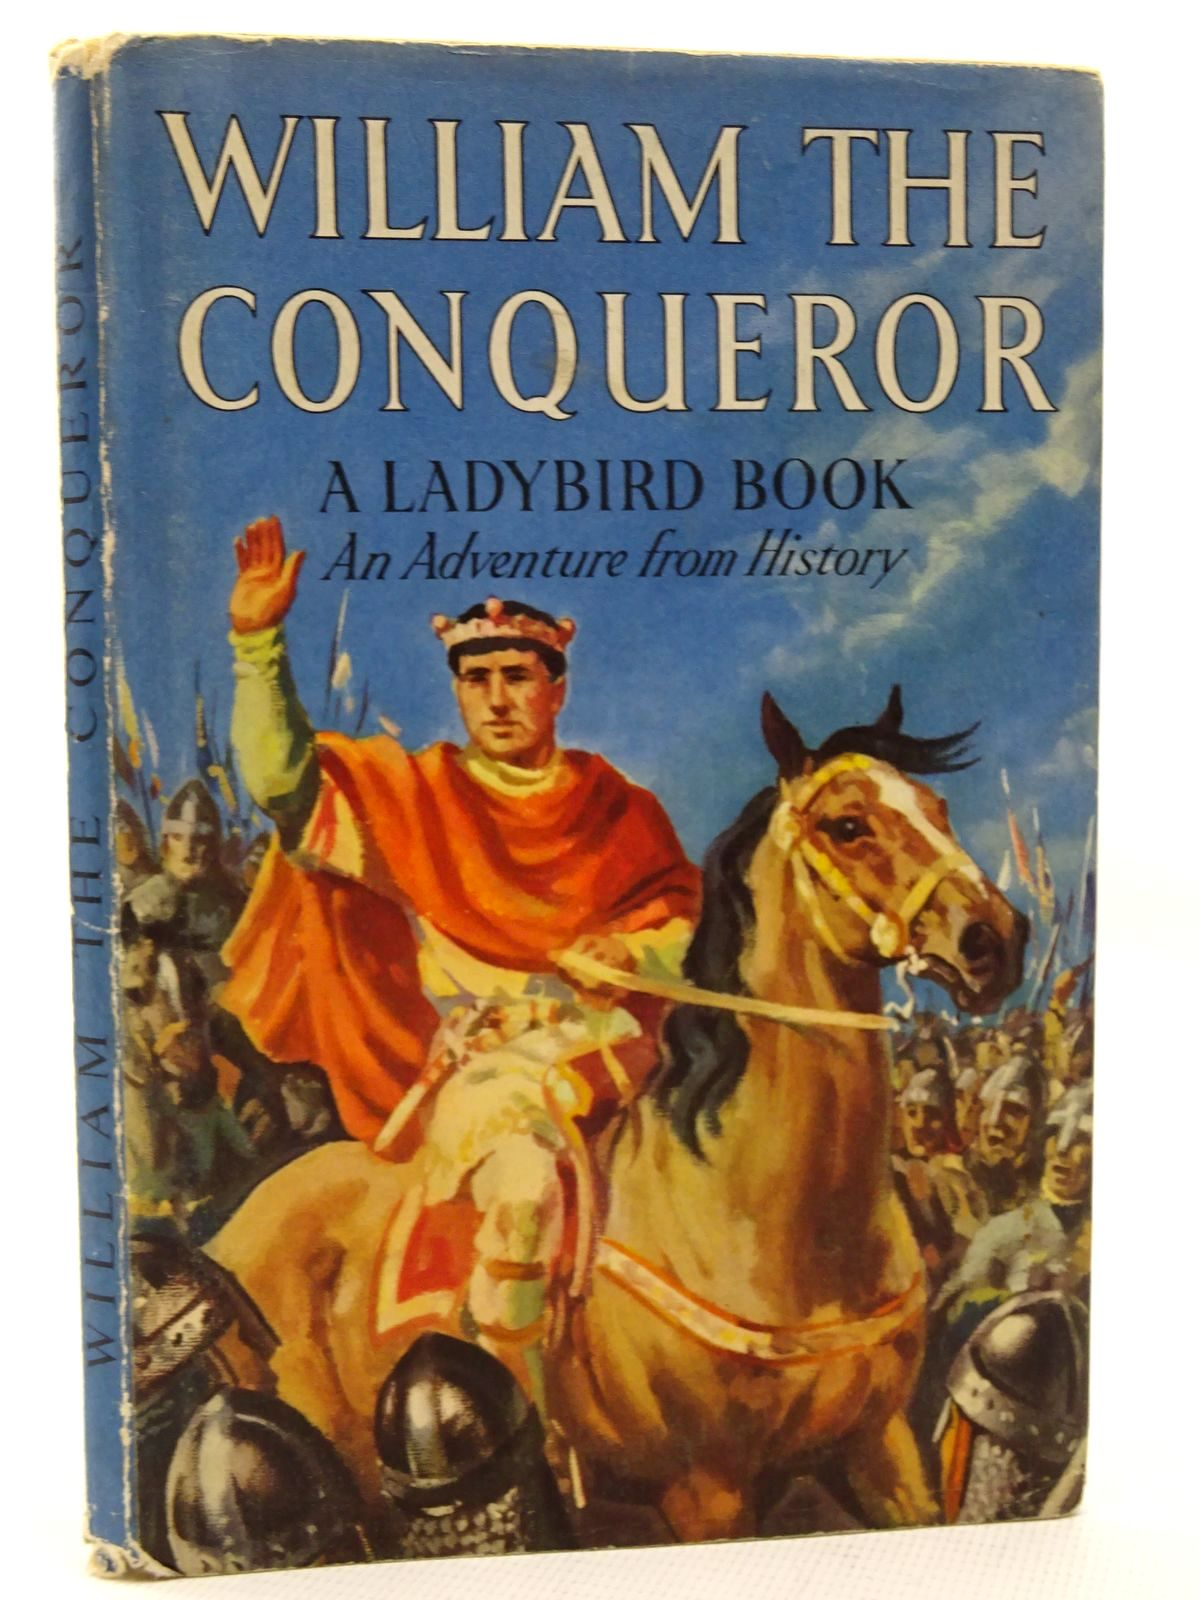 Photo of WILLIAM THE CONQUEROR written by Peach, L. Du Garde illustrated by Kenney, John published by Wills & Hepworth Ltd. (STOCK CODE: 2124650)  for sale by Stella & Rose's Books